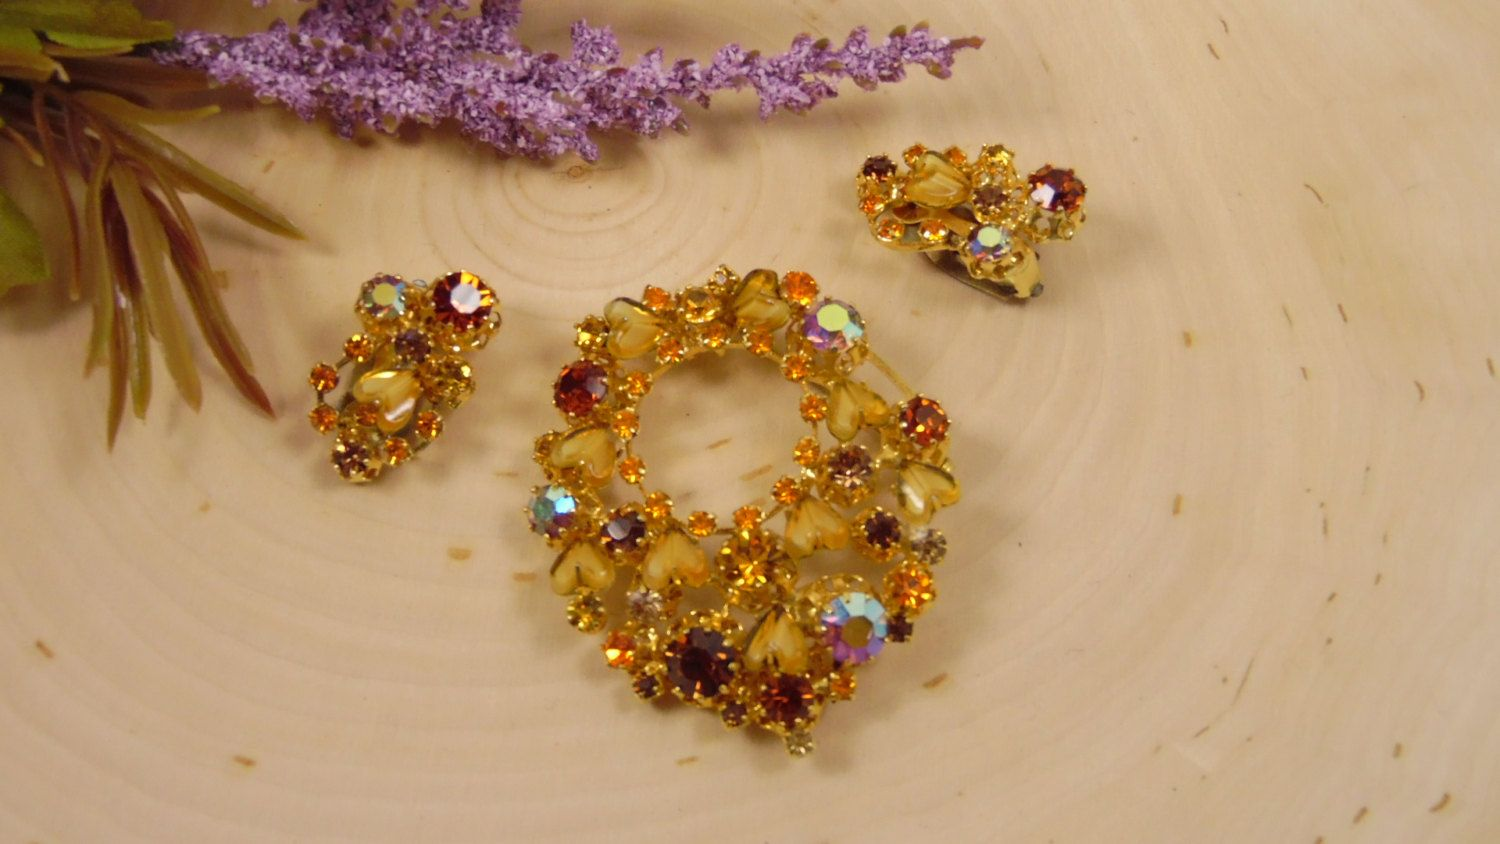 Vintage Austria Crystal Brooch And Earring Set, Rootbeer Amber,Citrine Yellow, Topaz, Aurora Borealis Crystals Set in Goldtone by BessyBellVintage on Etsy